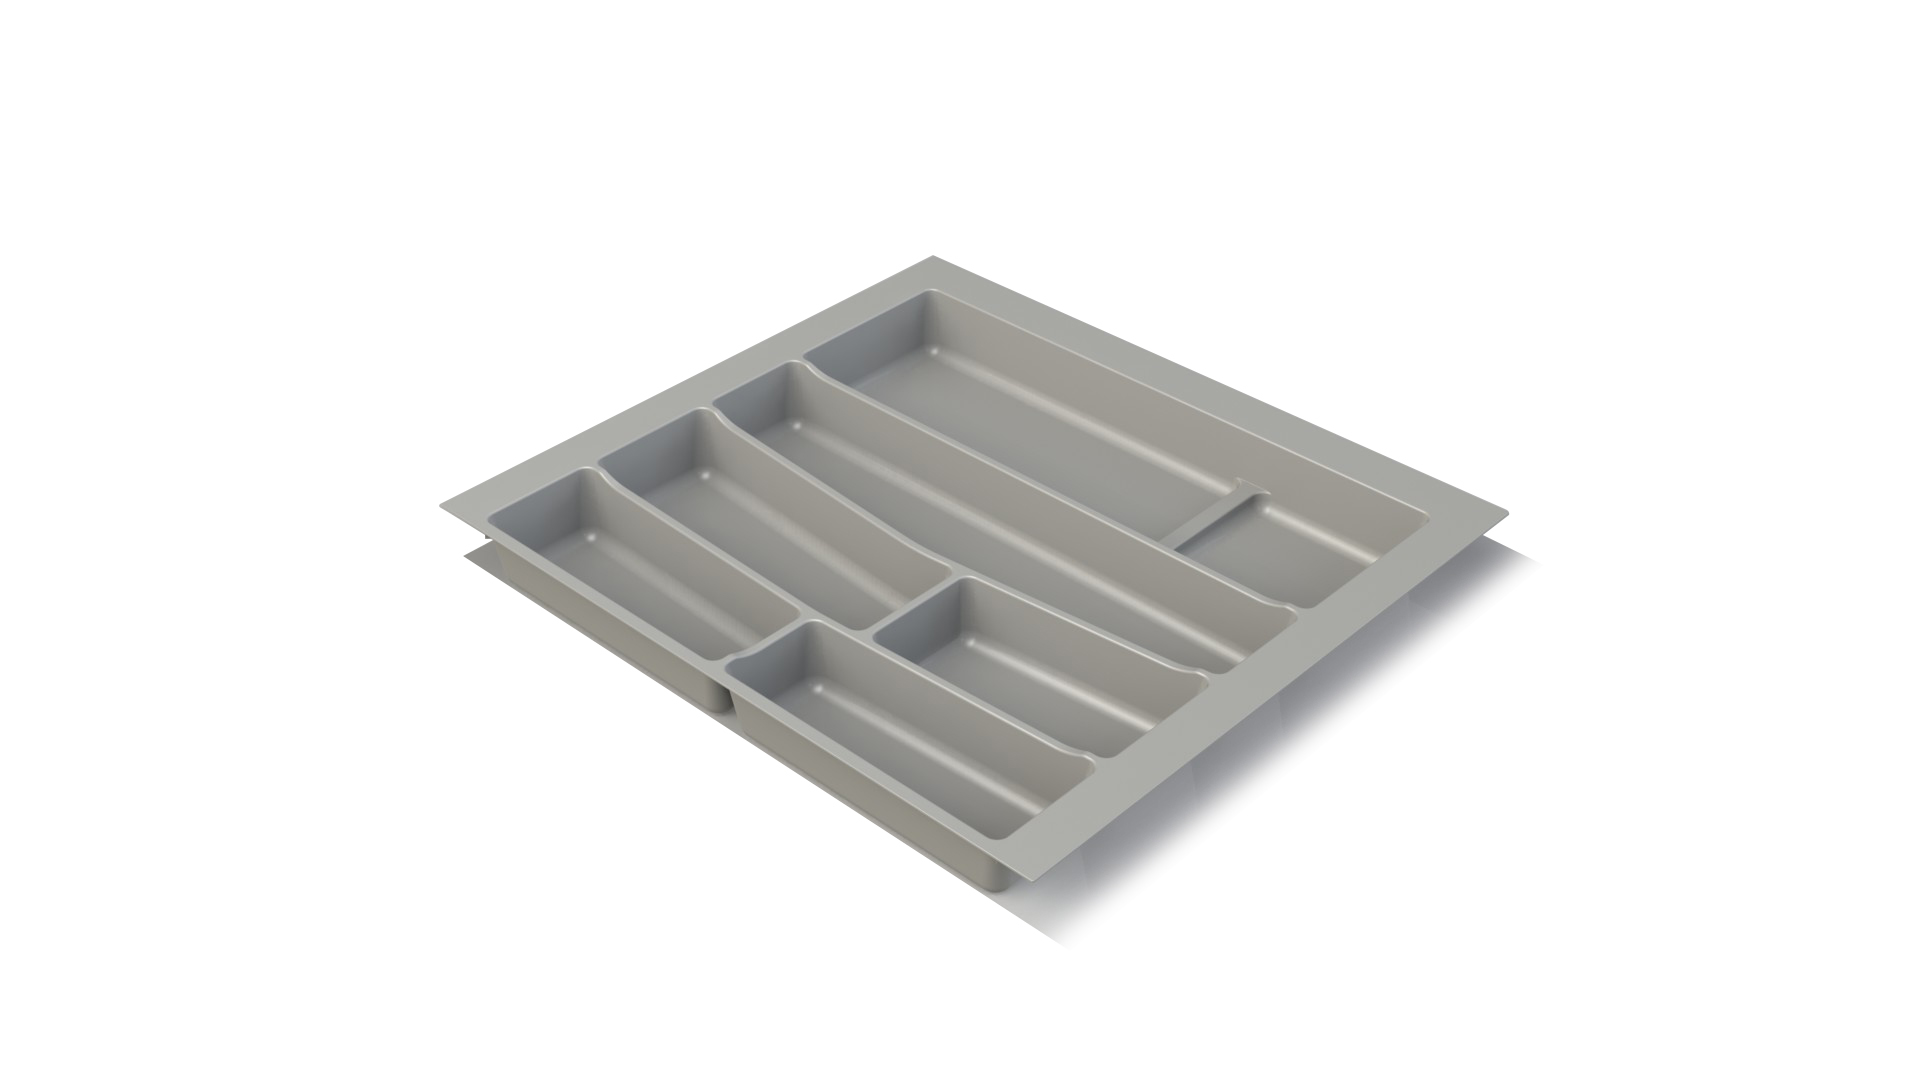 Premium Grey Cutlery Insert for 600mm wide Drawer for Kitchen